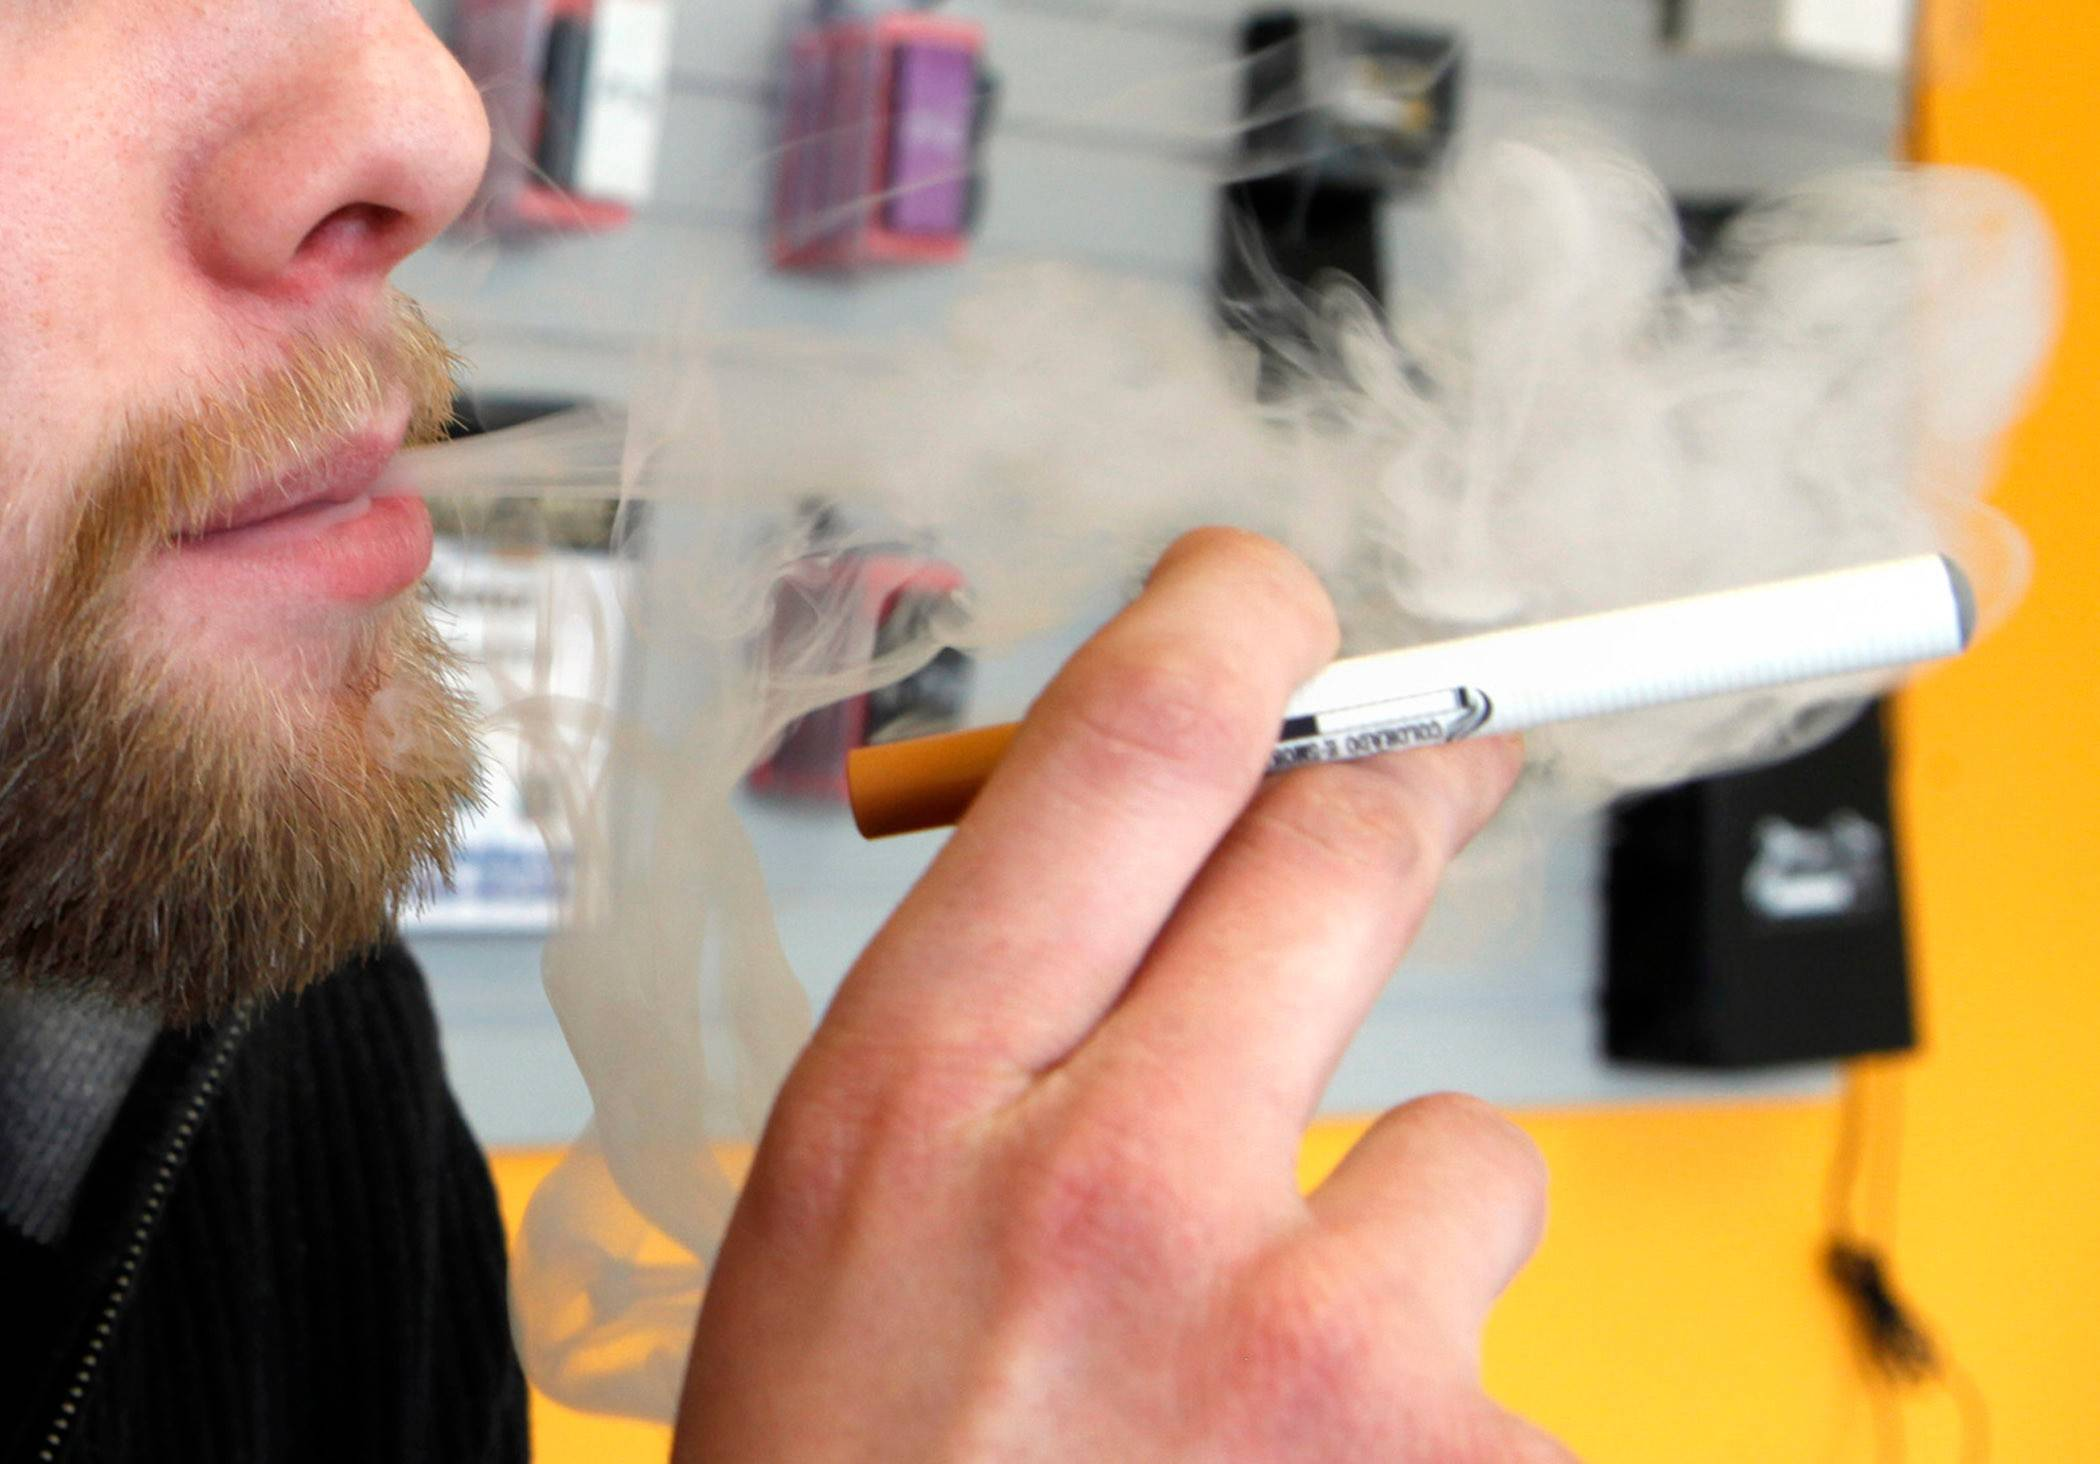 Mount Prospect bans e-cigarettes for minors